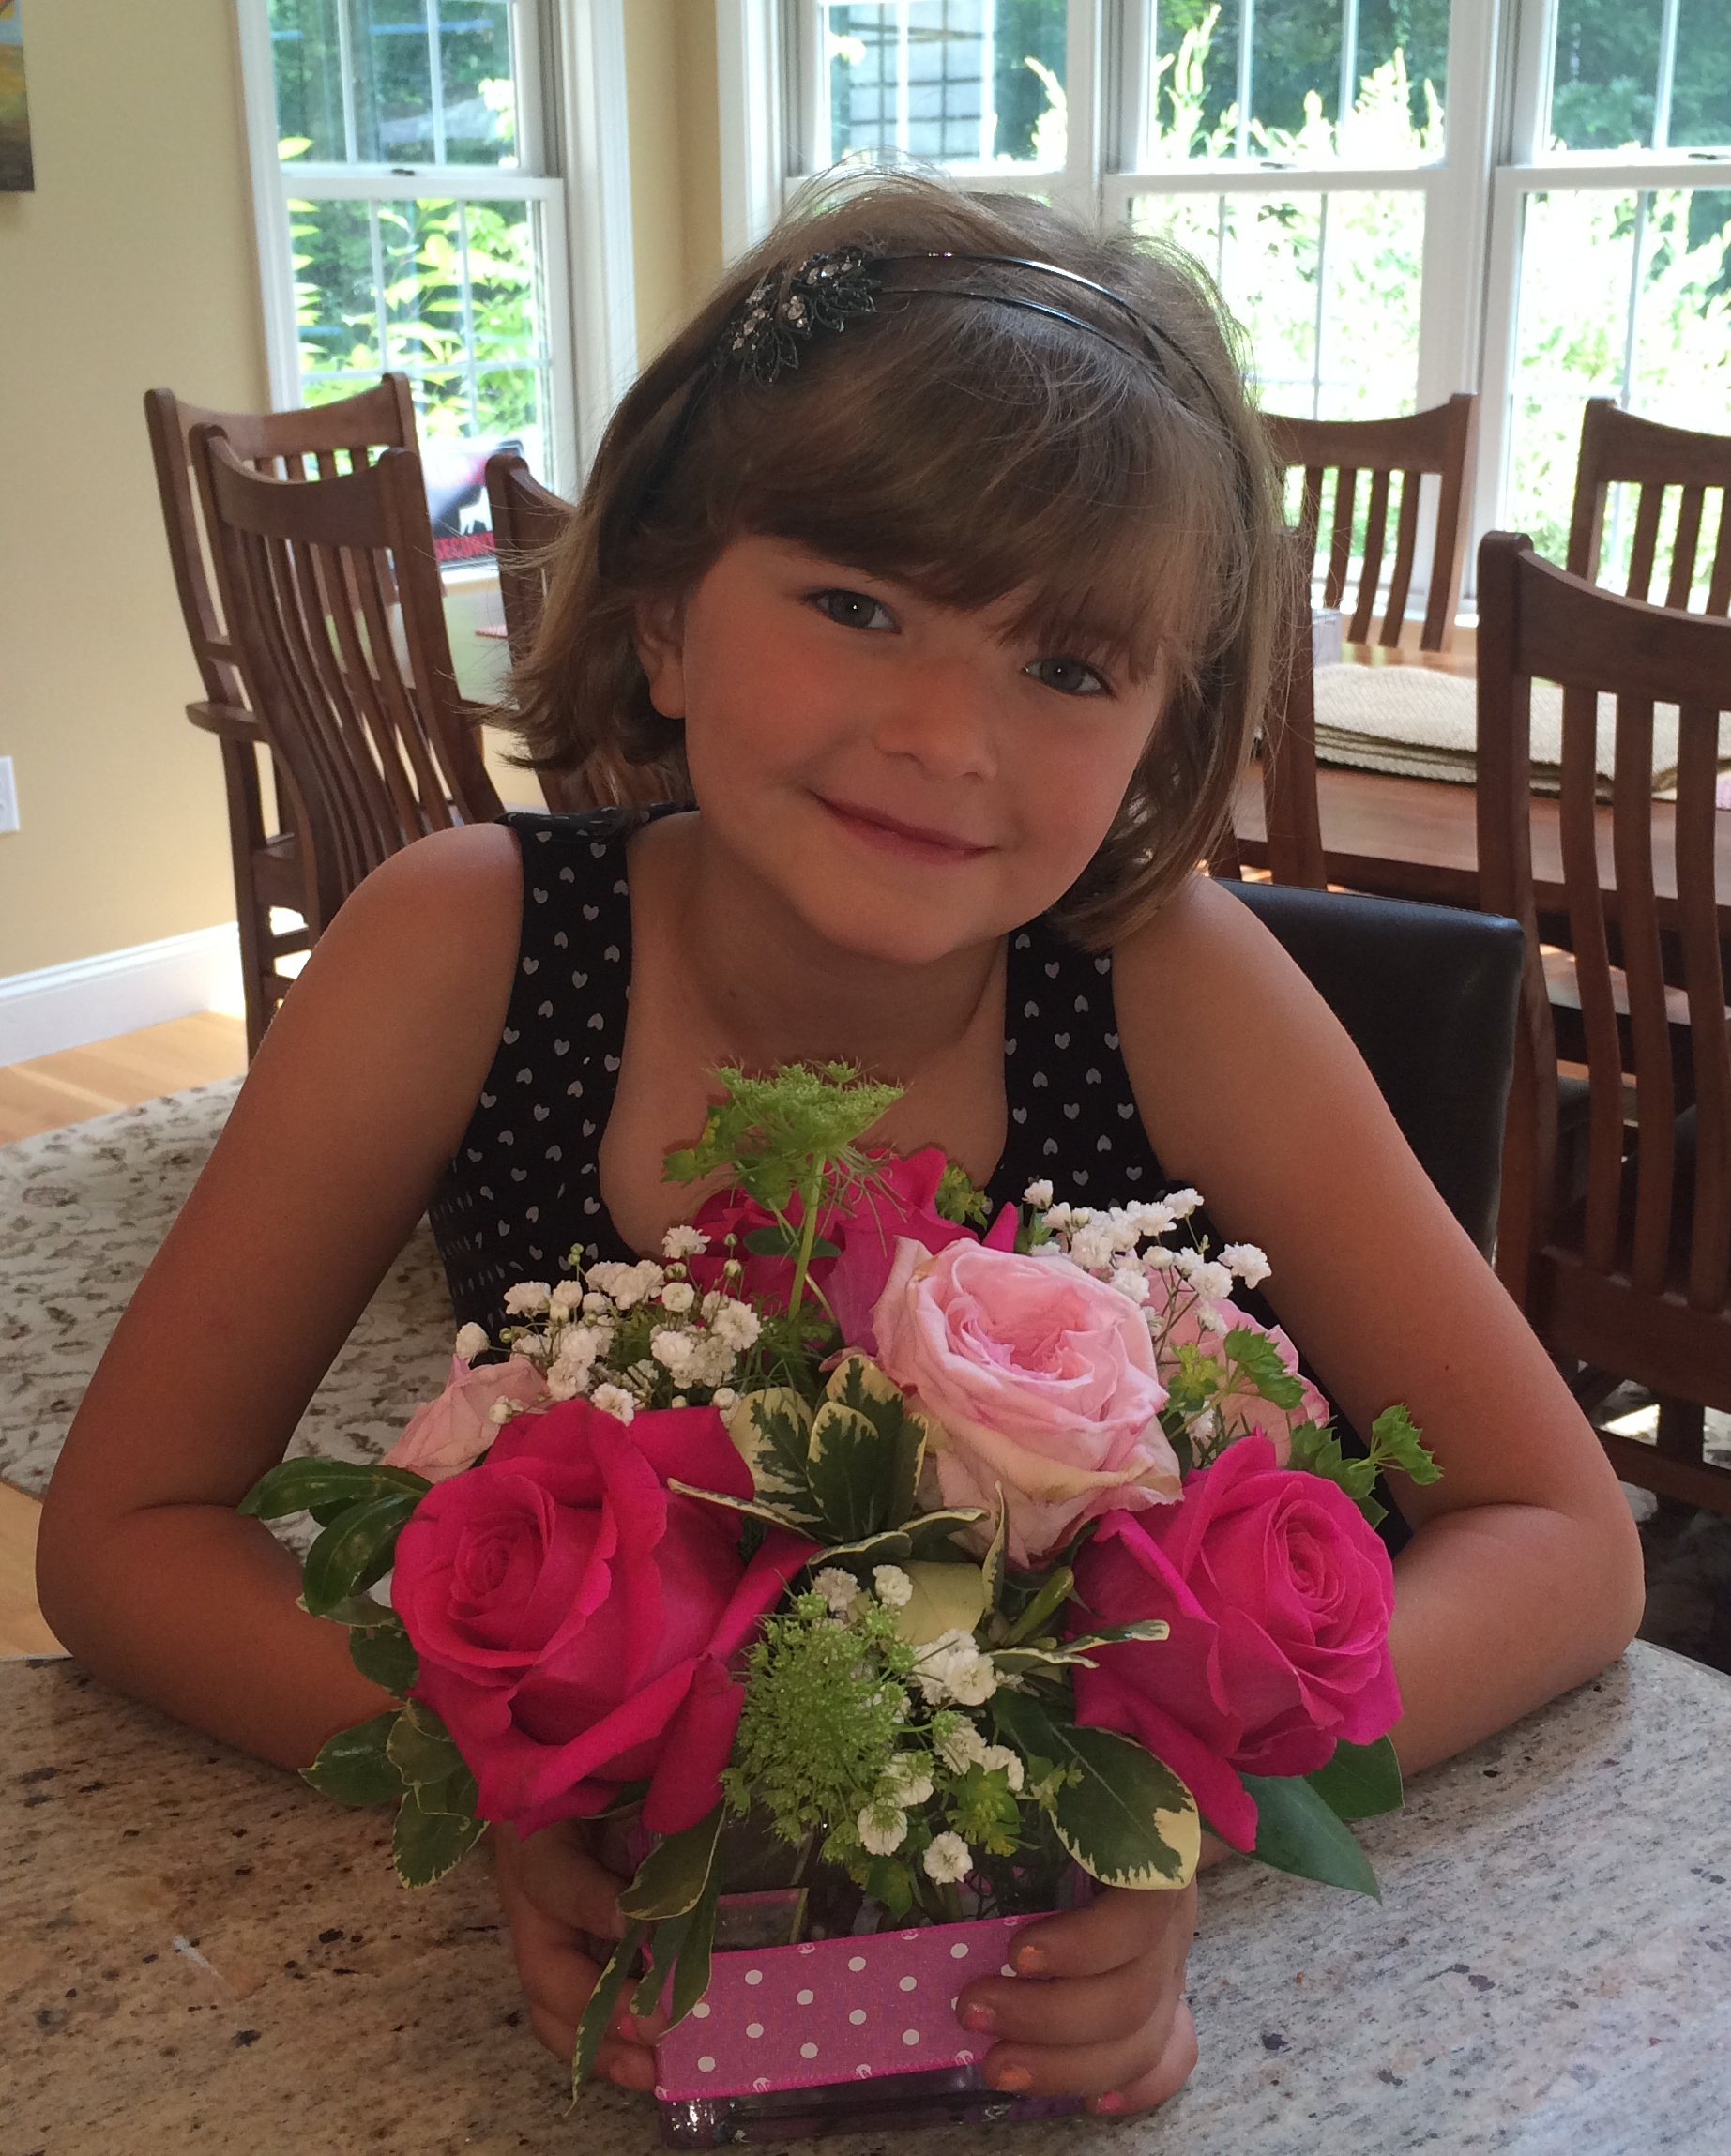 Rose and her birthday flowers.